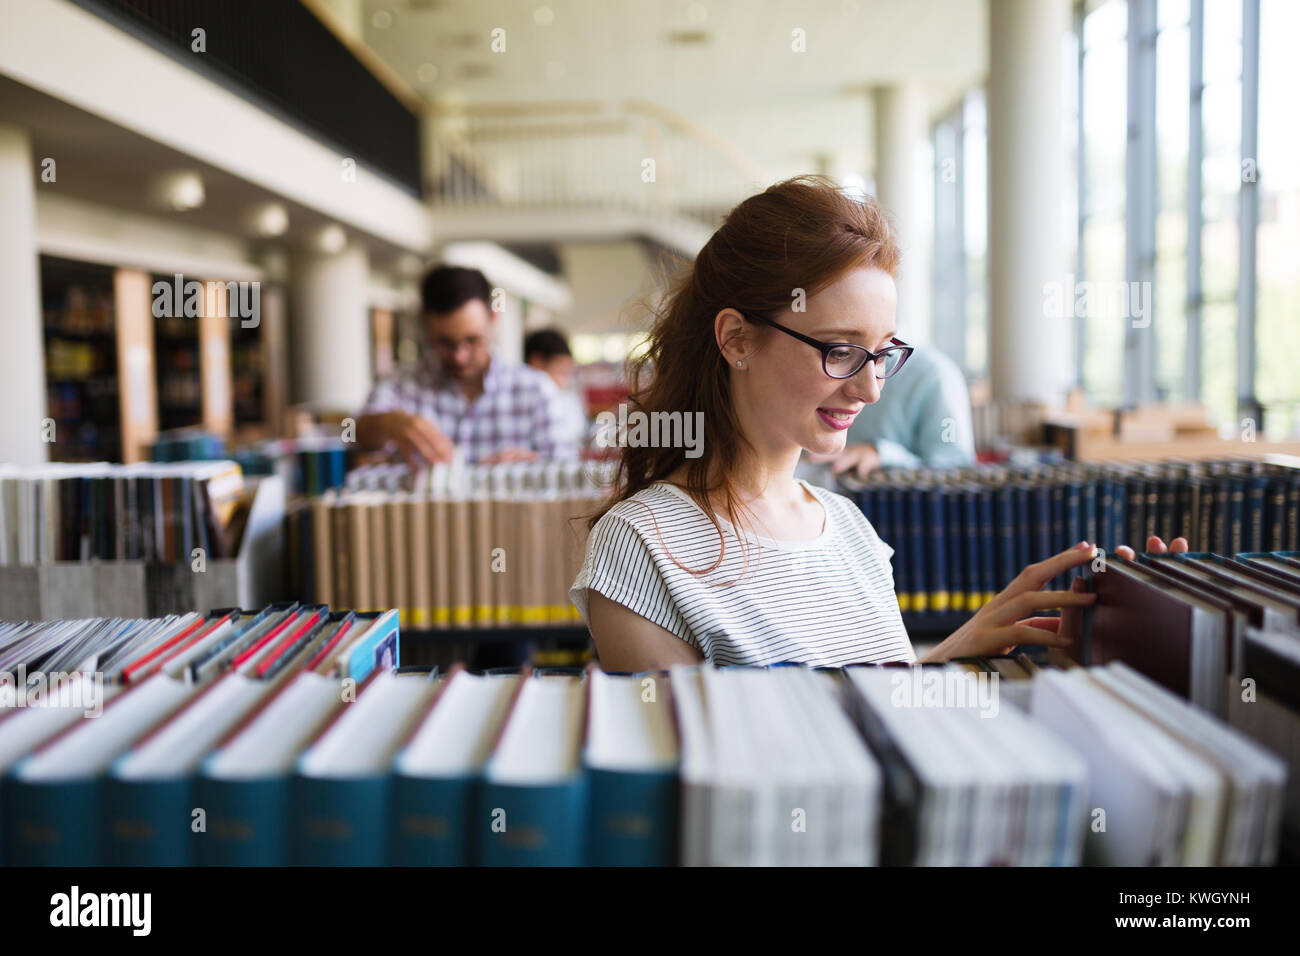 Portrait of a pretty smiling girl reading book in library Photo Stock